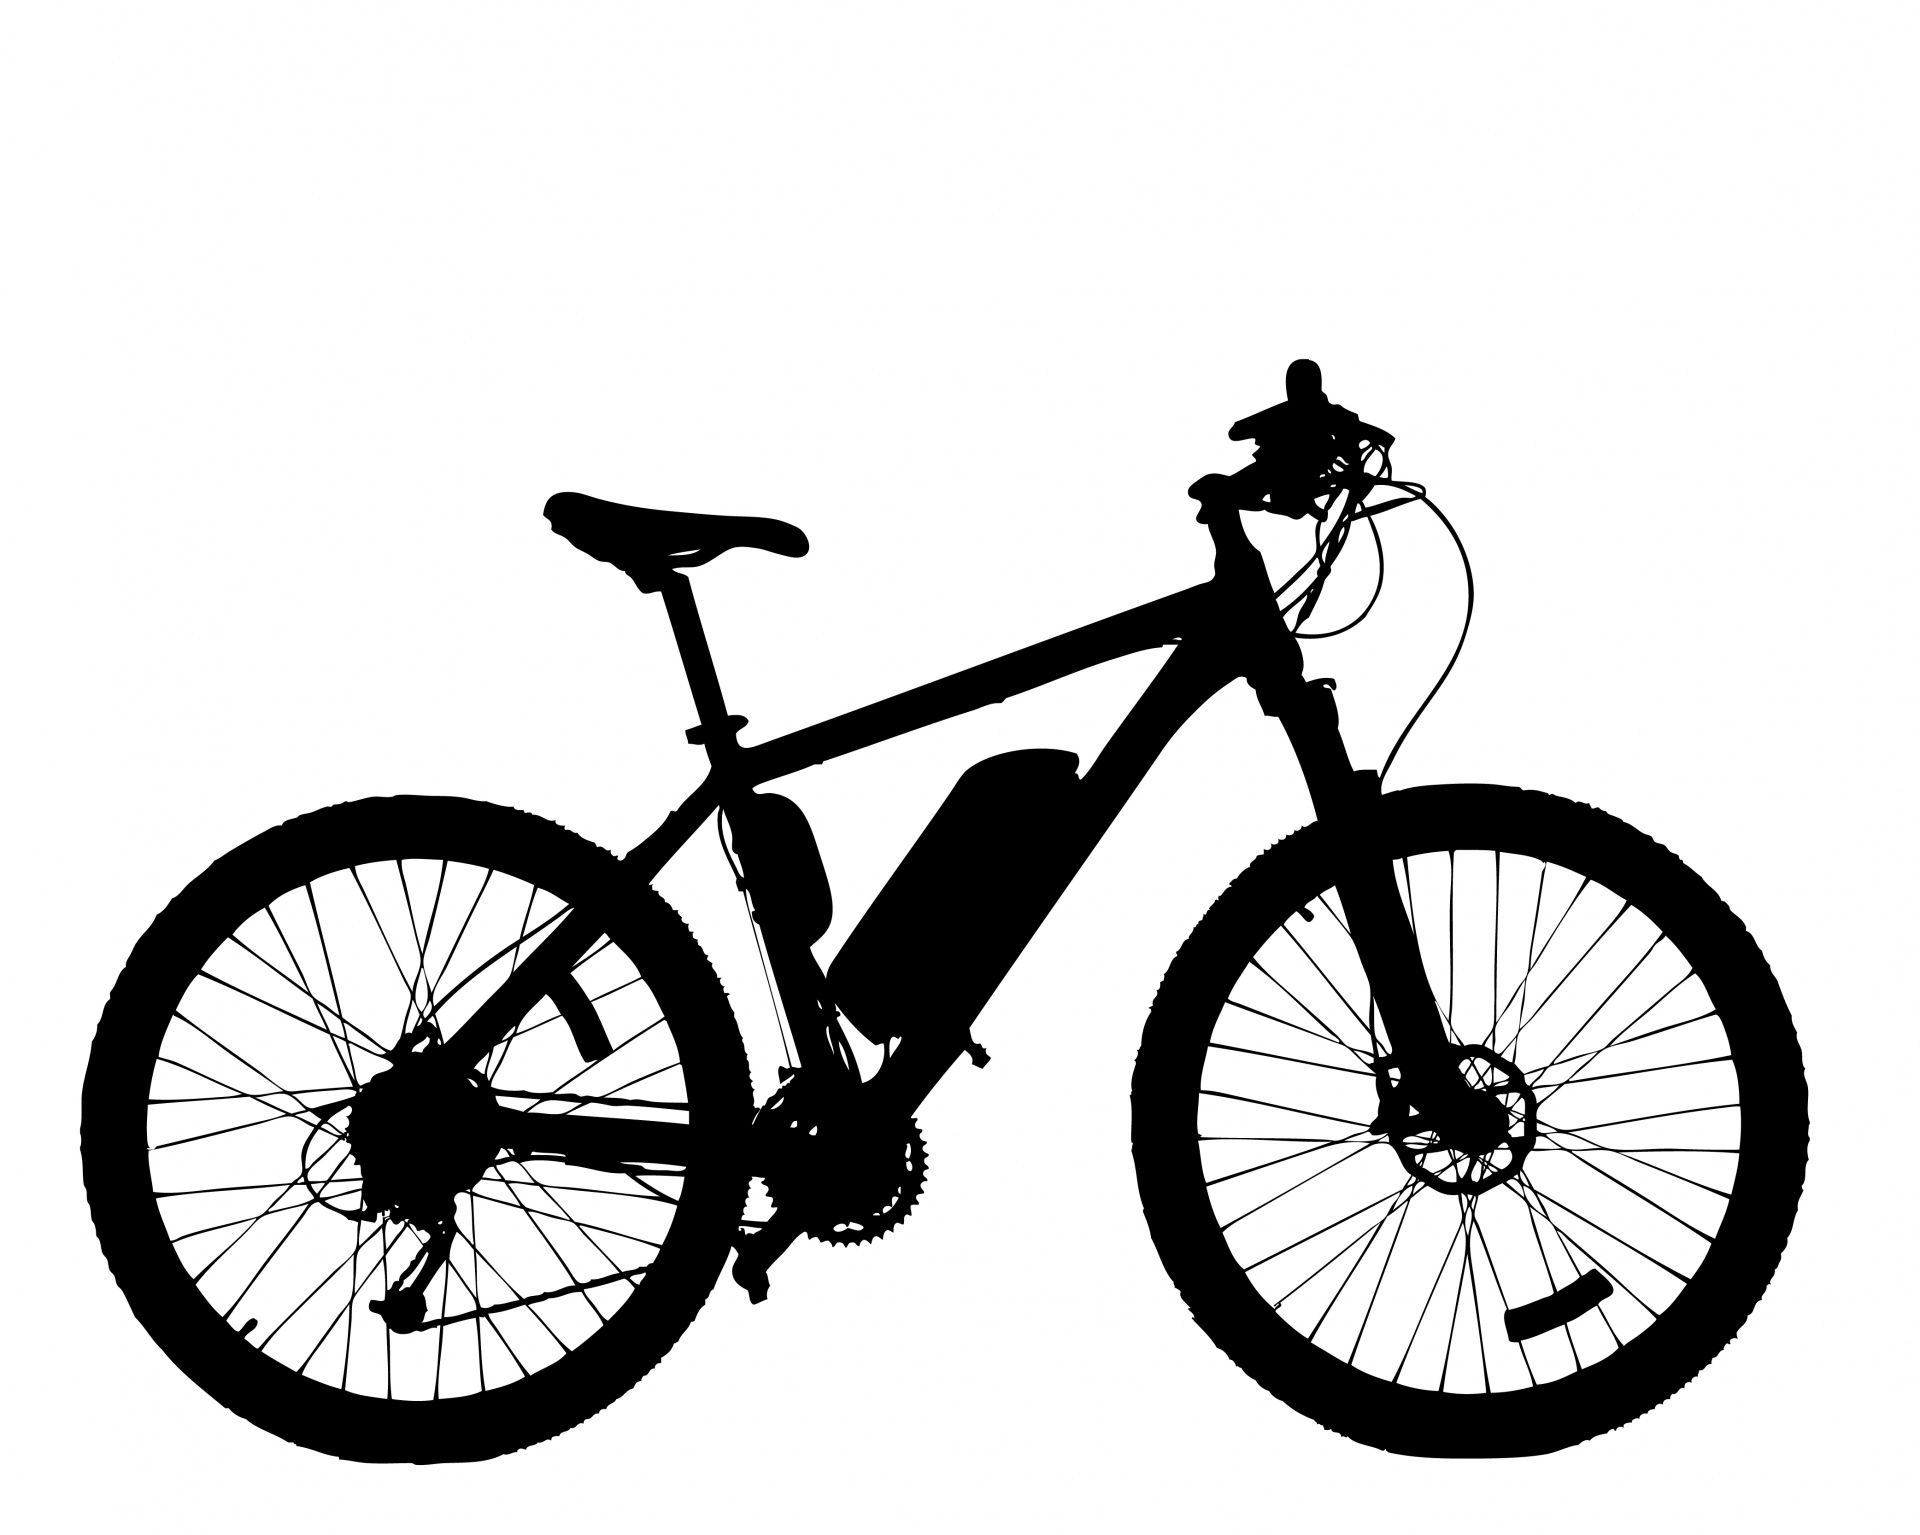 1920x1535 Bicycle Silhouette Free Stock Photo